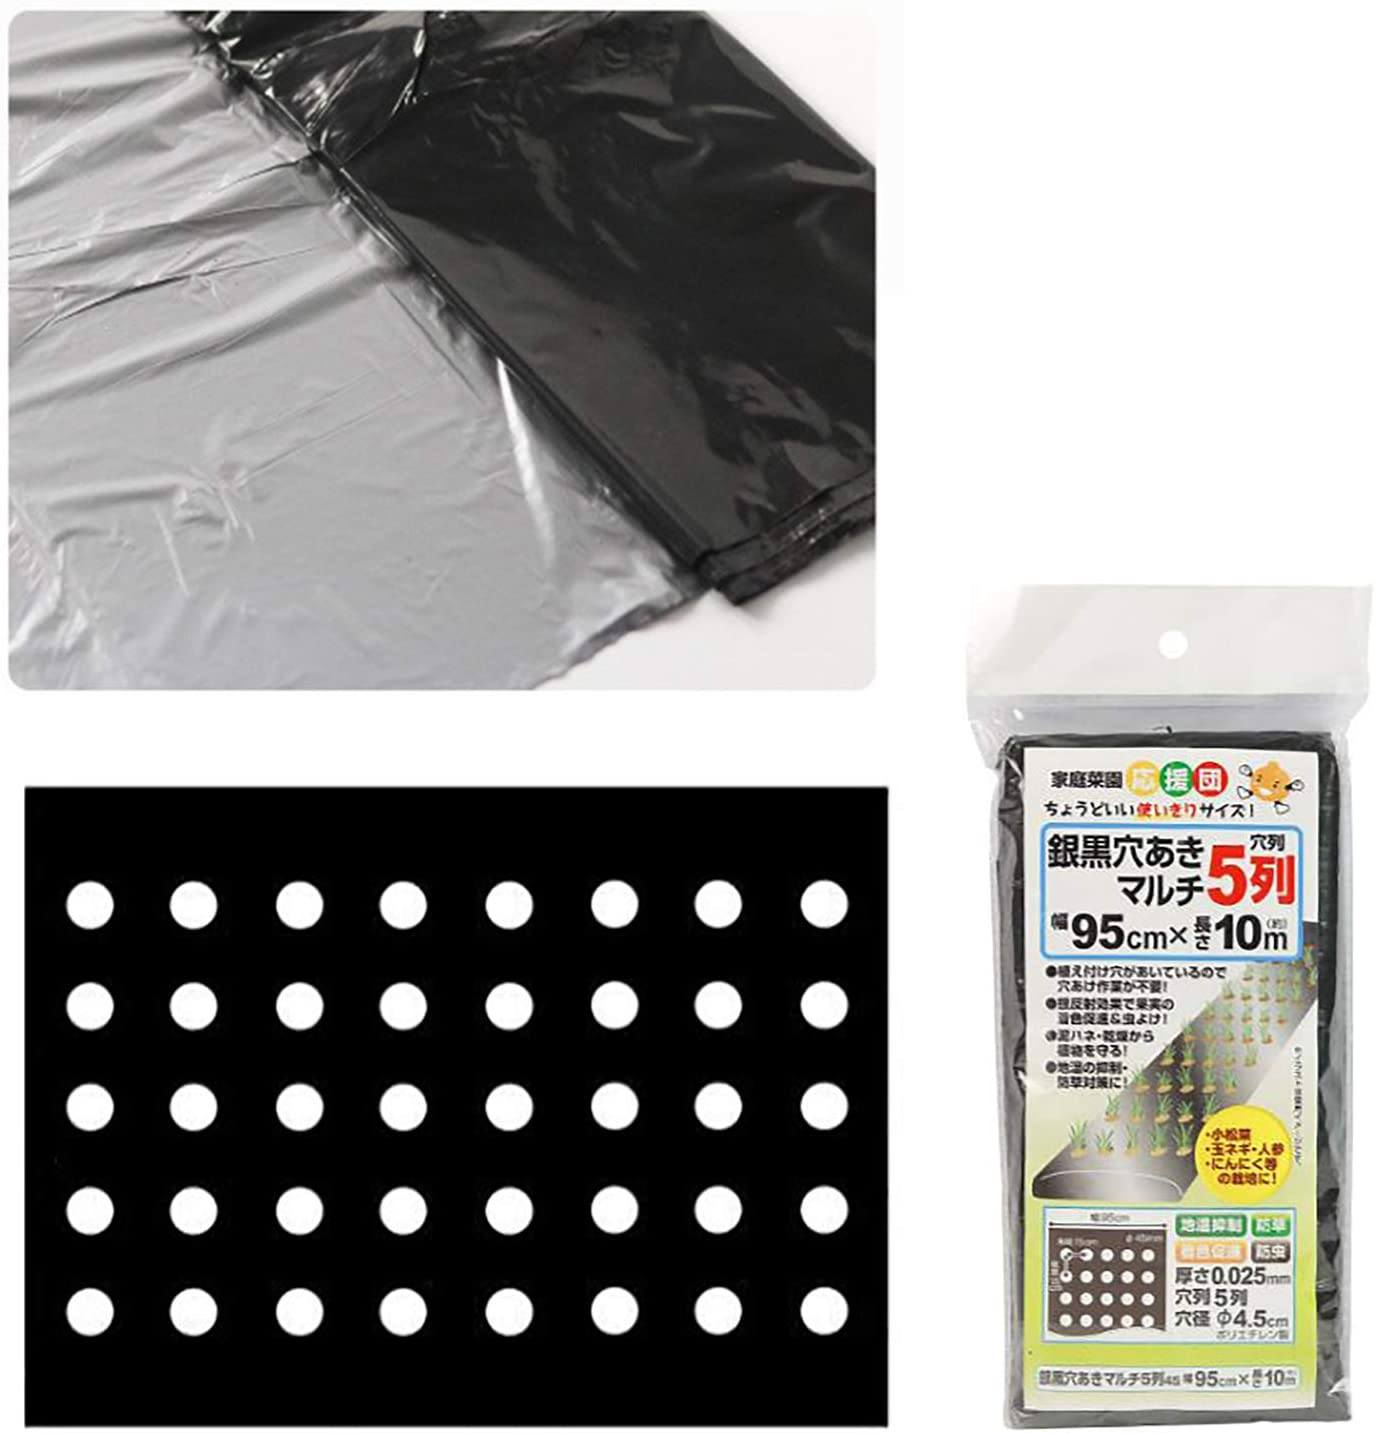 WDDH Weed Barrier Fabric with Planting Holes, 3.1ft x 32.8ft Black Plastic Sheeting Landscape Ground Cover, Silver-Black Plastic Mulch, for Greenhouse Landscape